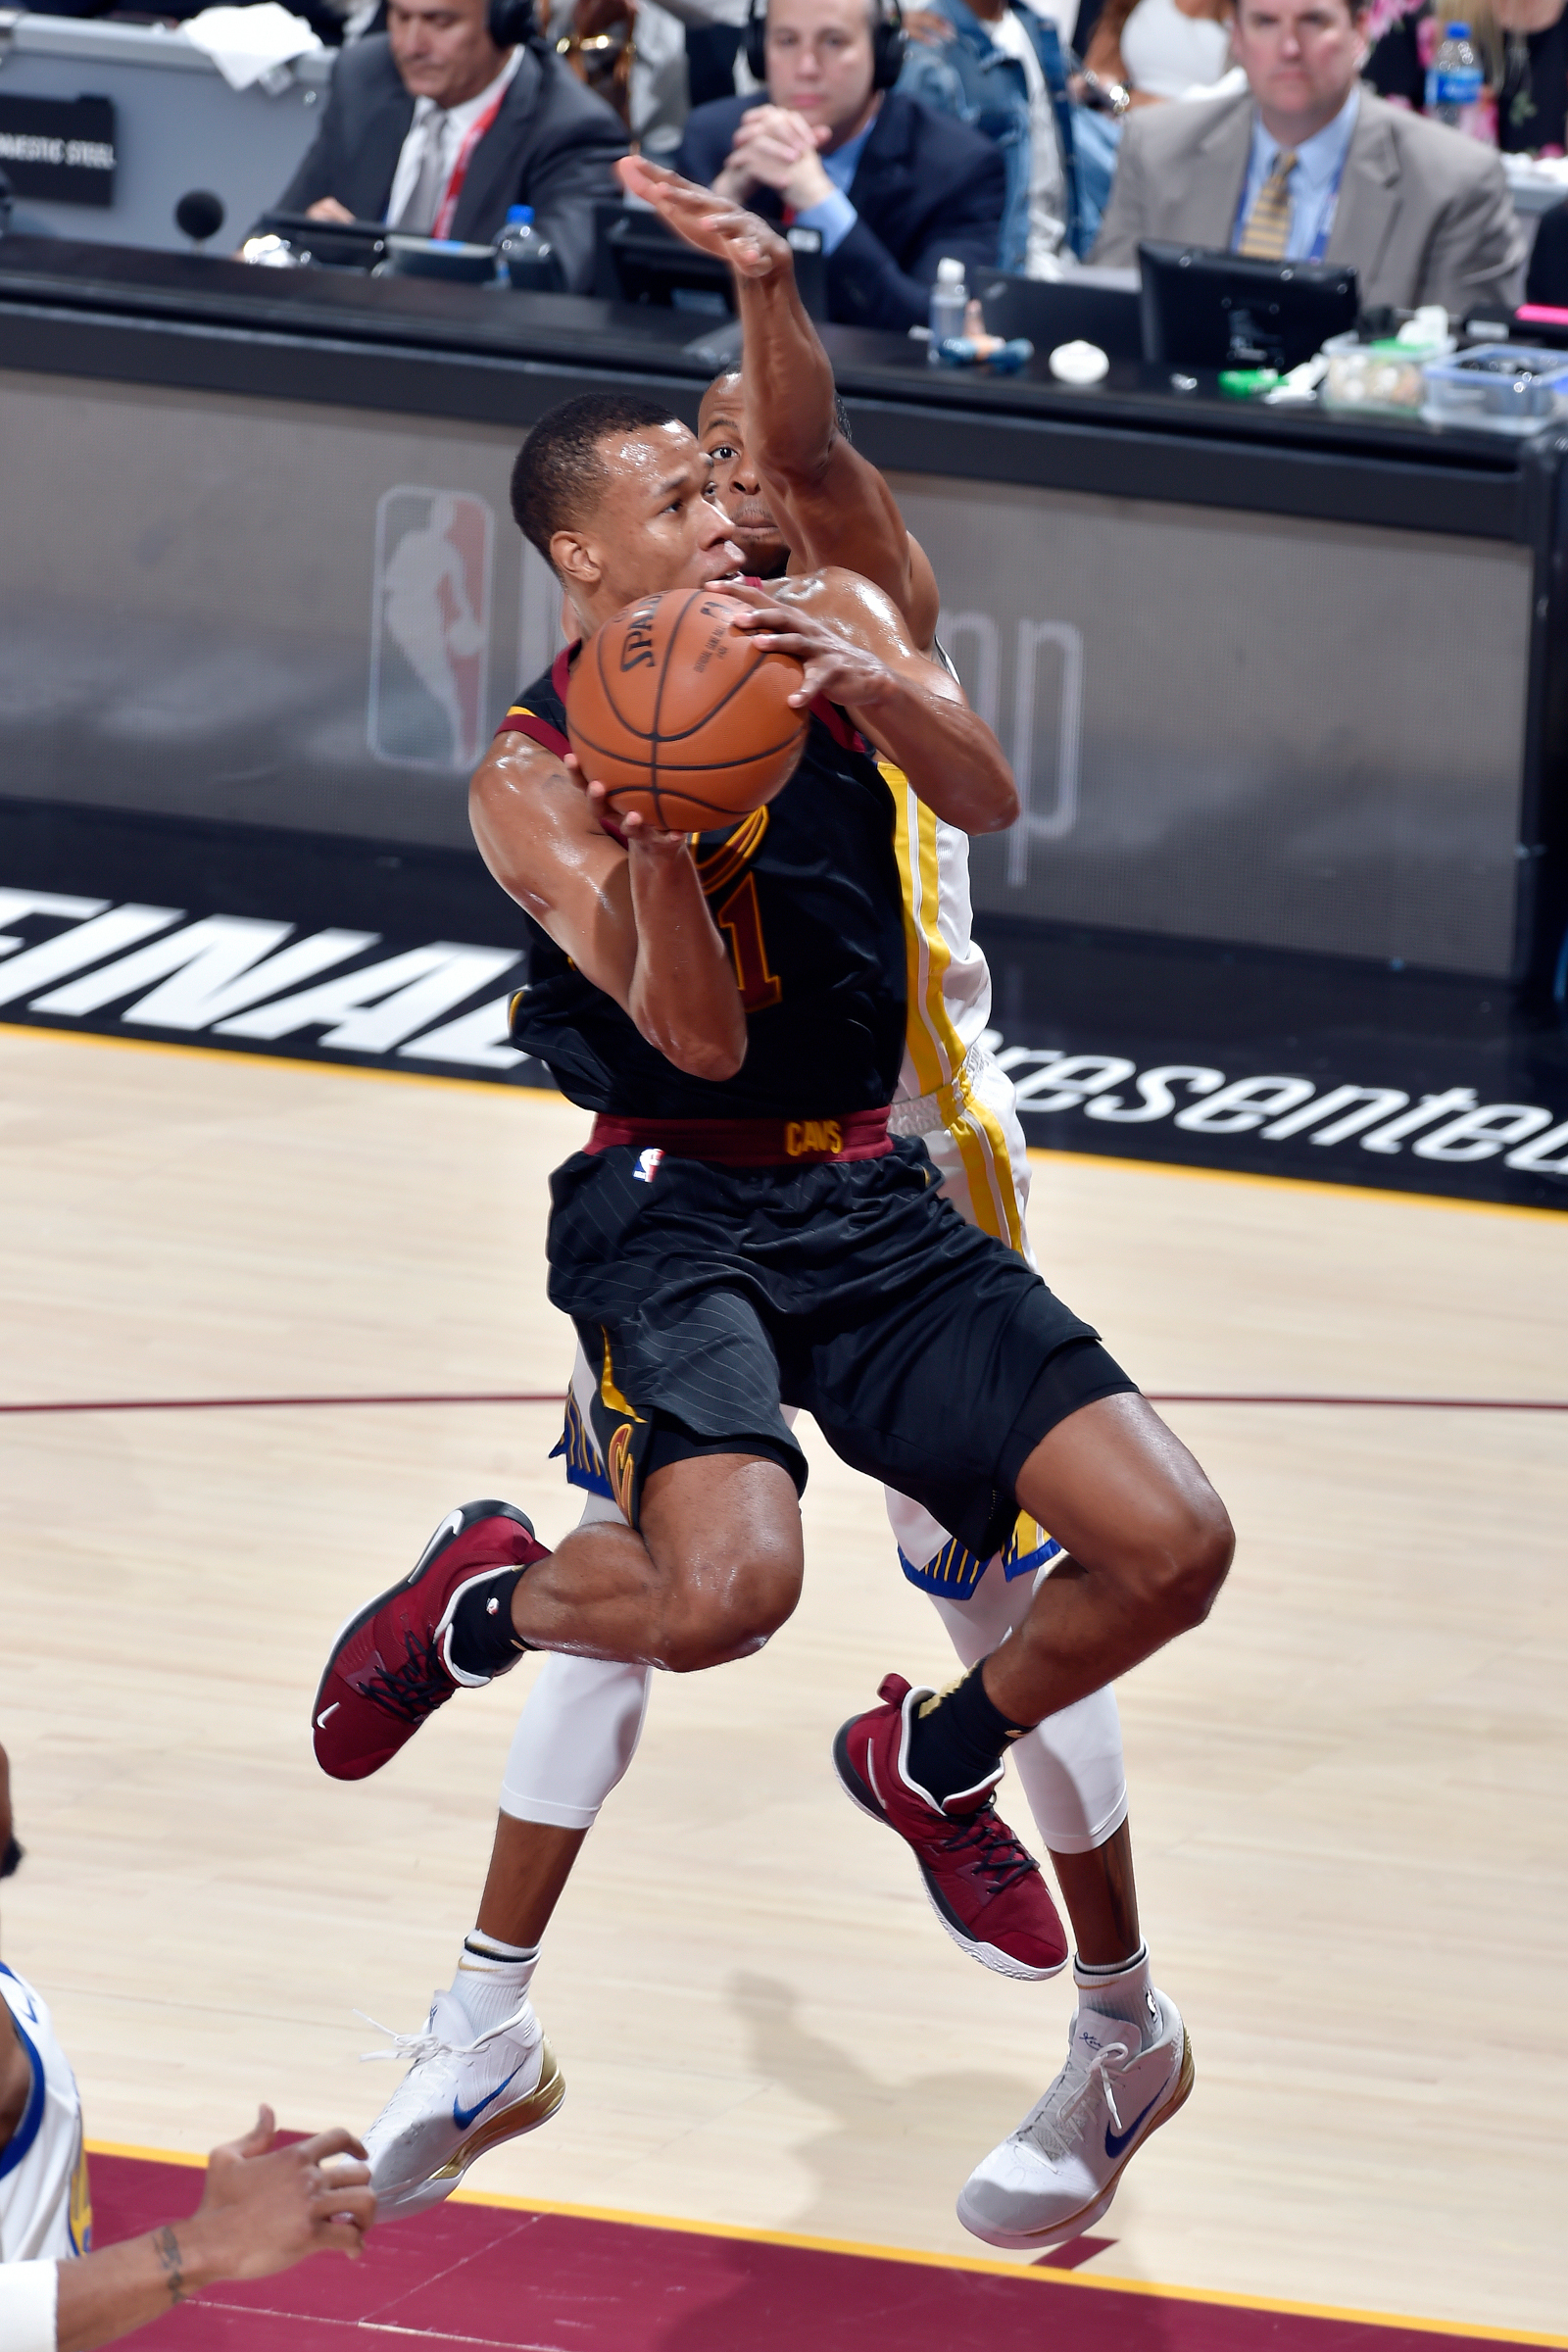 Rodney Hood #1 of the Cleveland Cavaliers drives to the basket during the game against the Golden State Warriors in Game Four of the 2018 NBA Finals on June 8, 2018 at Quicken Loans Arena in Cleveland, Ohio